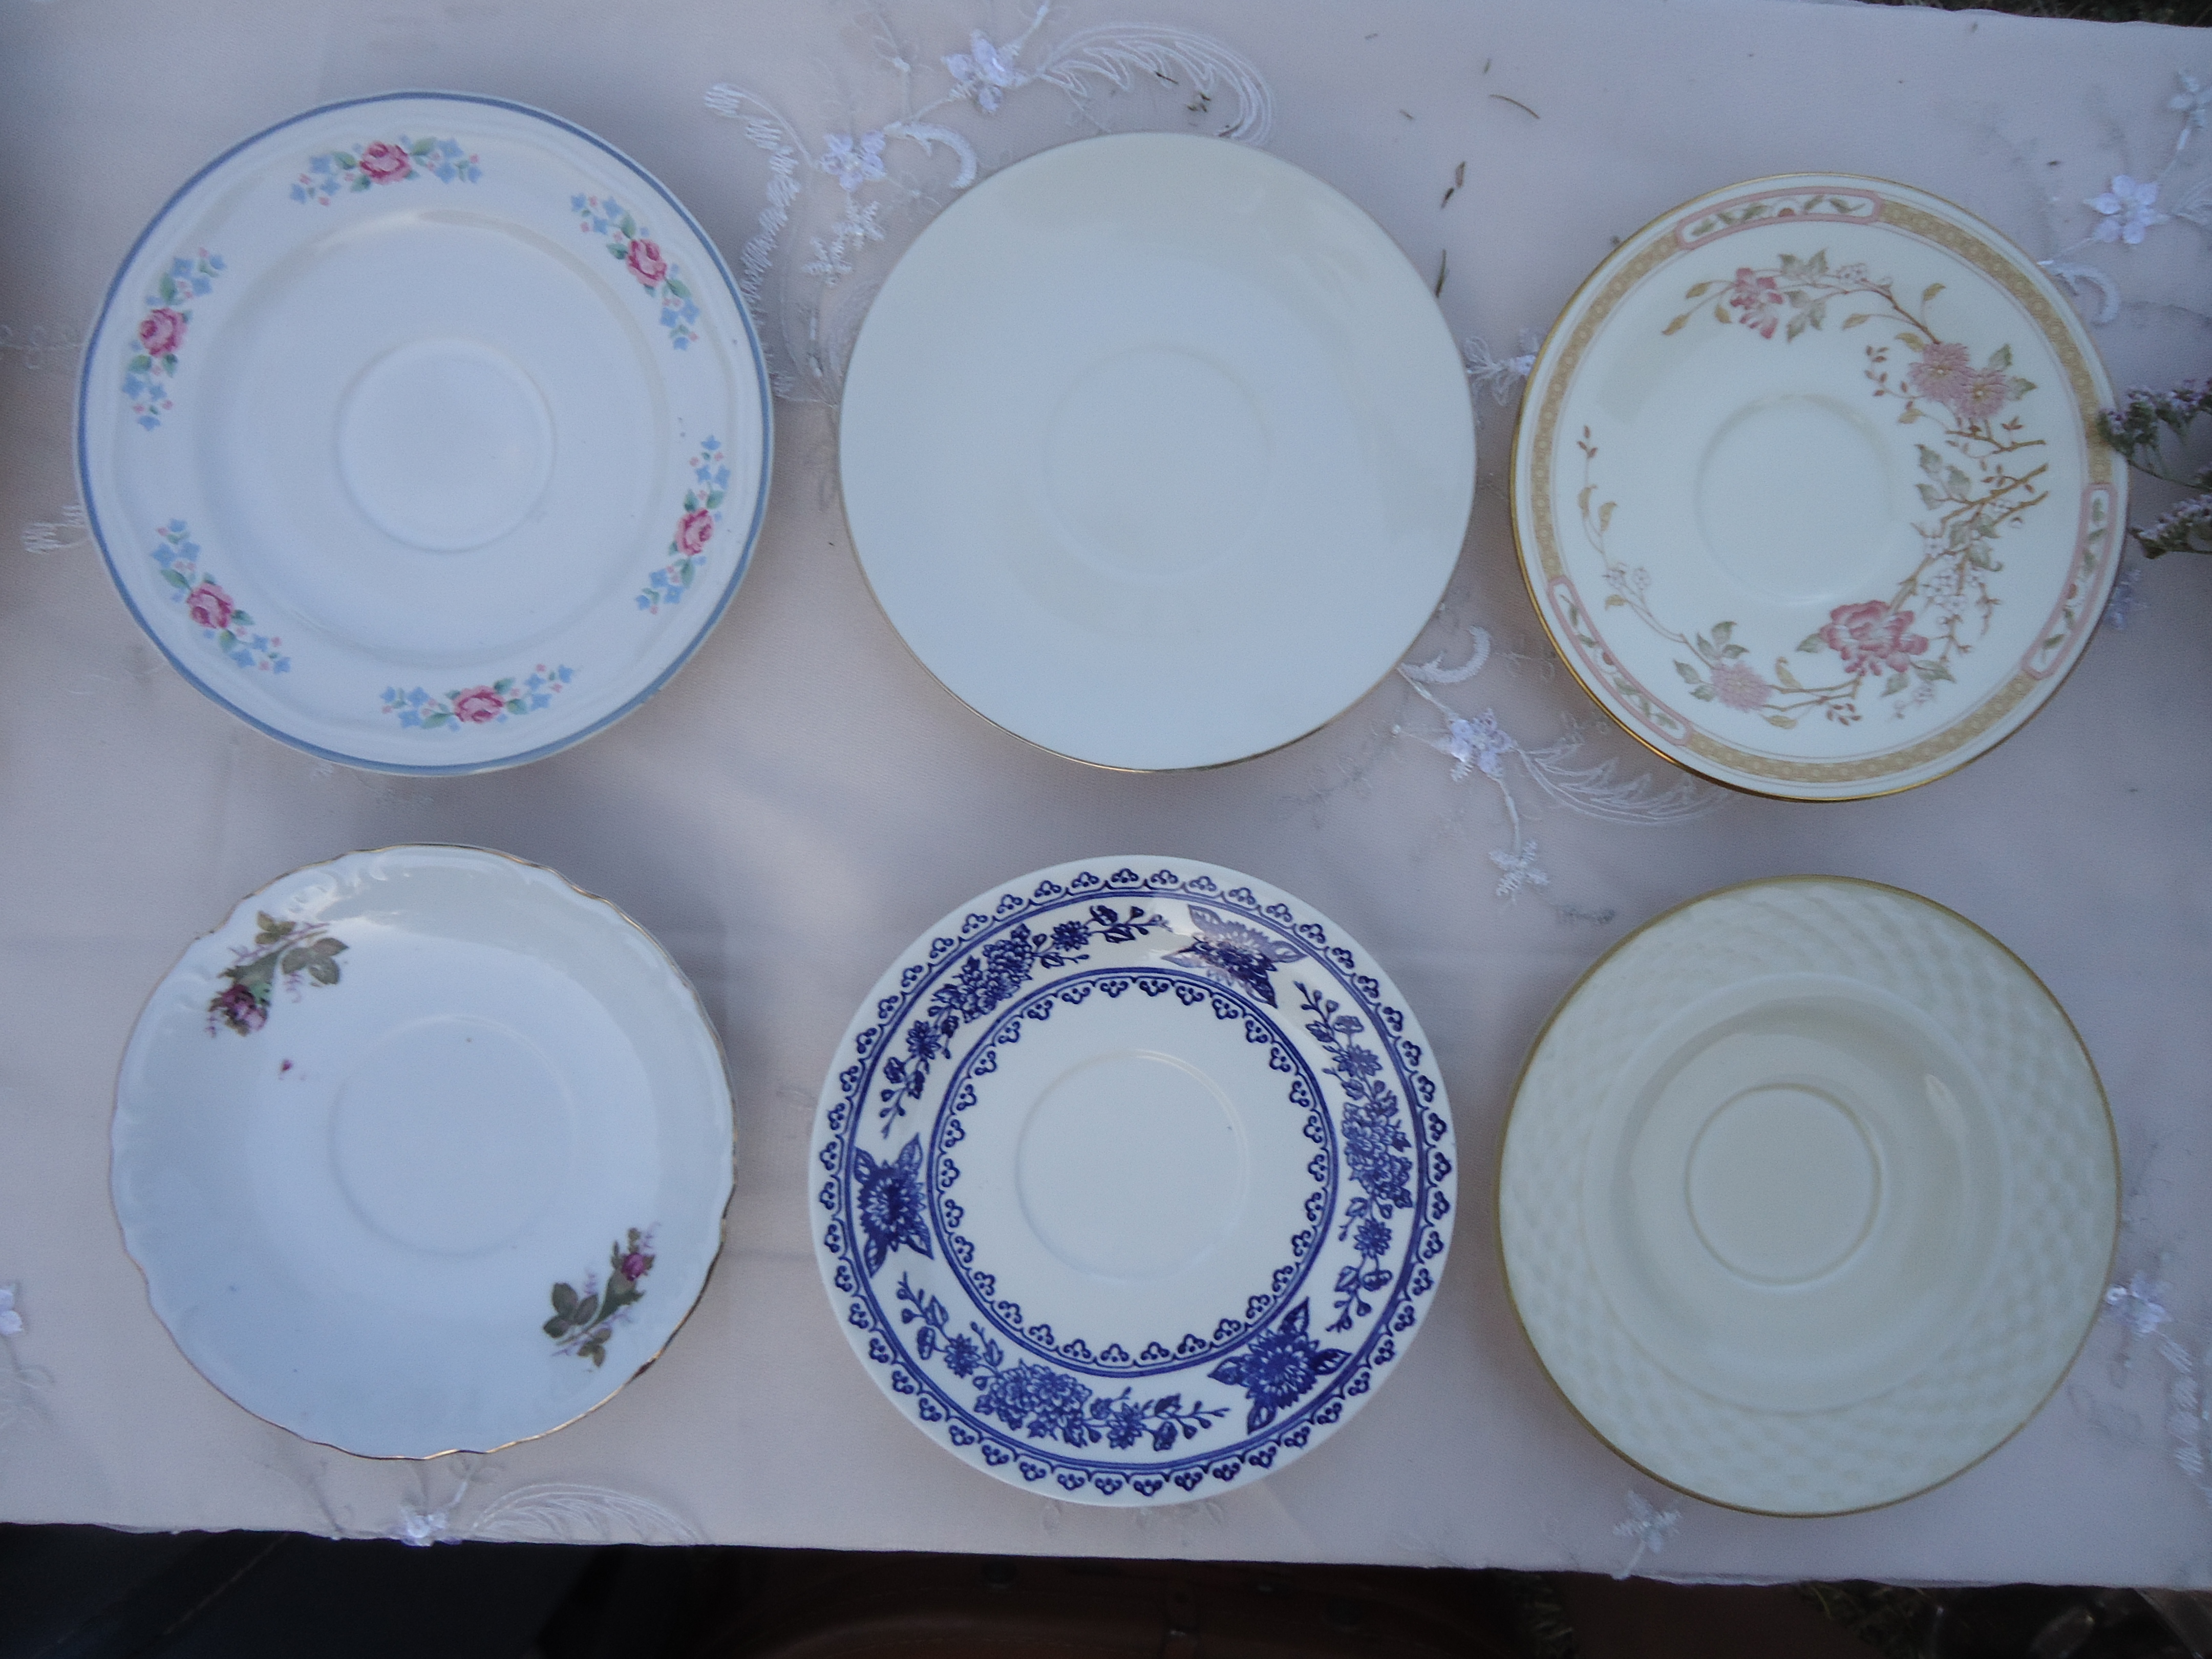 Registry, Place Settings, Dessert, Plates